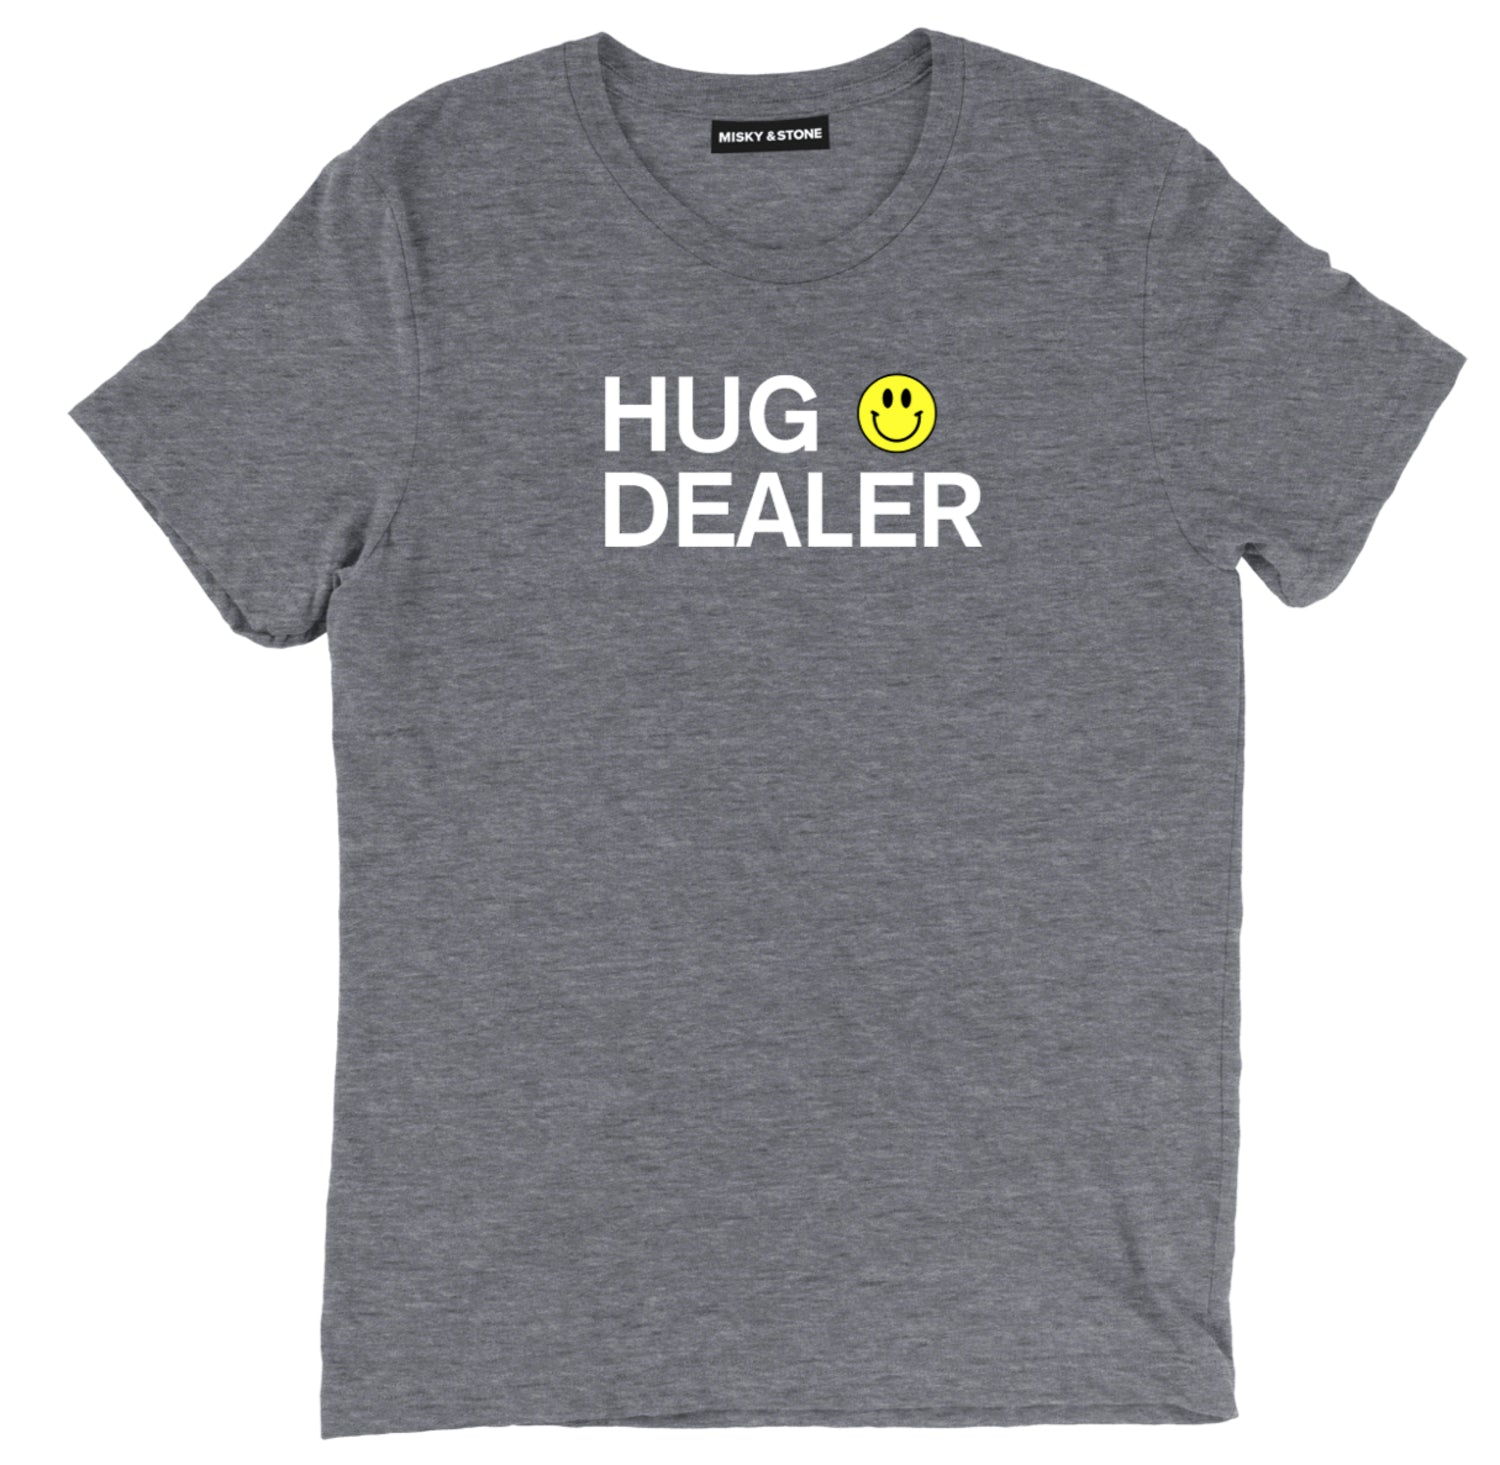 Hug Dealer sarcastic tee shirts, sarcastic merch Hug Dealer, sarcastic Hug Dealer clothing, sarcastic Hug Dealer apparel, sarcastic Hug Dealer t shirt sayings, sarcastic Hug Dealer t shirts quotes, funny sarcastic t shirts